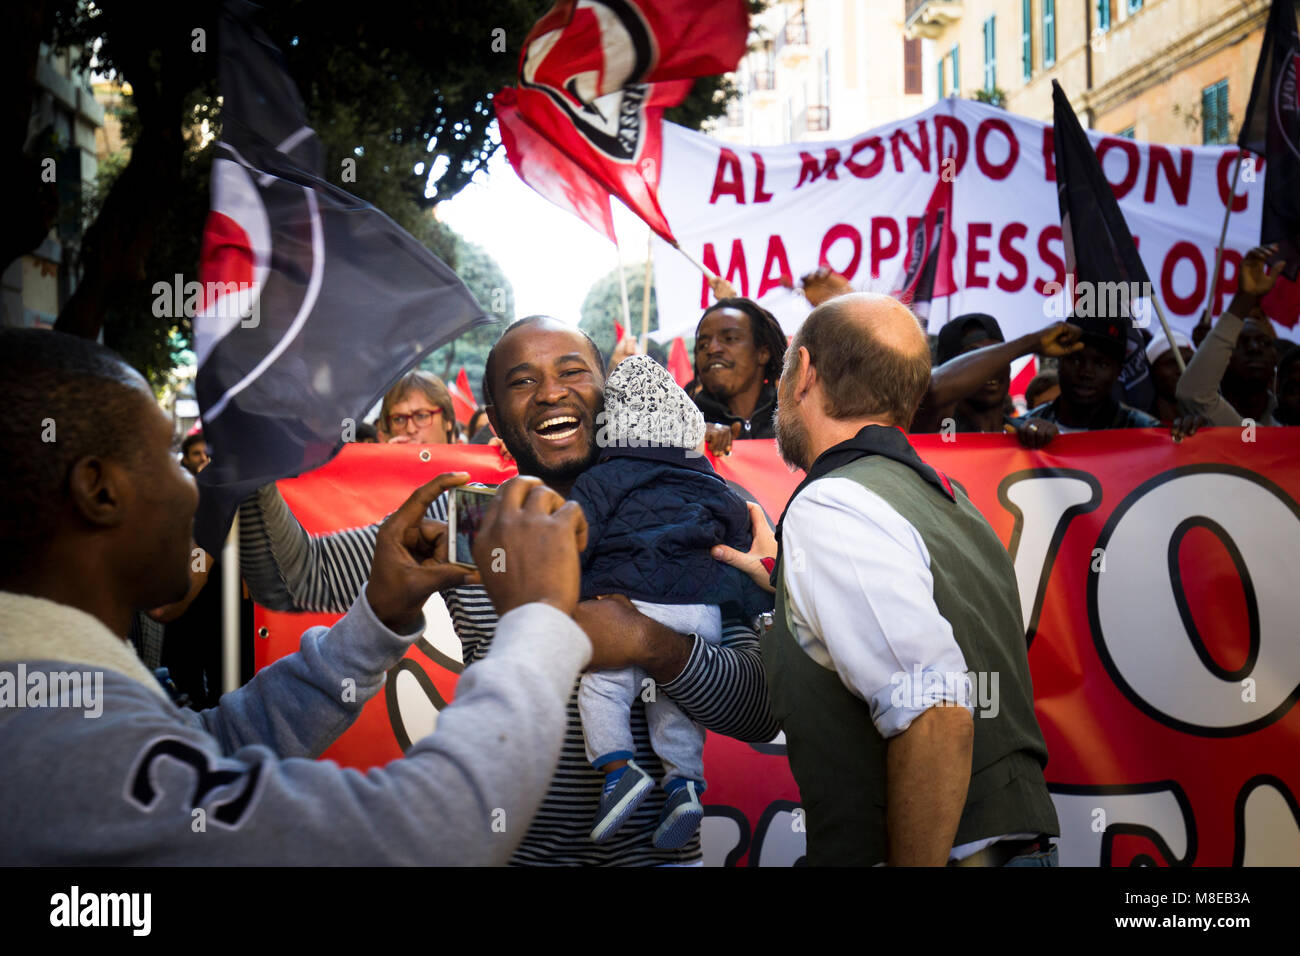 Savona, Italy - October 15, 2017: Young African father with daughter in arms during an anti-fascist parade organized - Stock Image